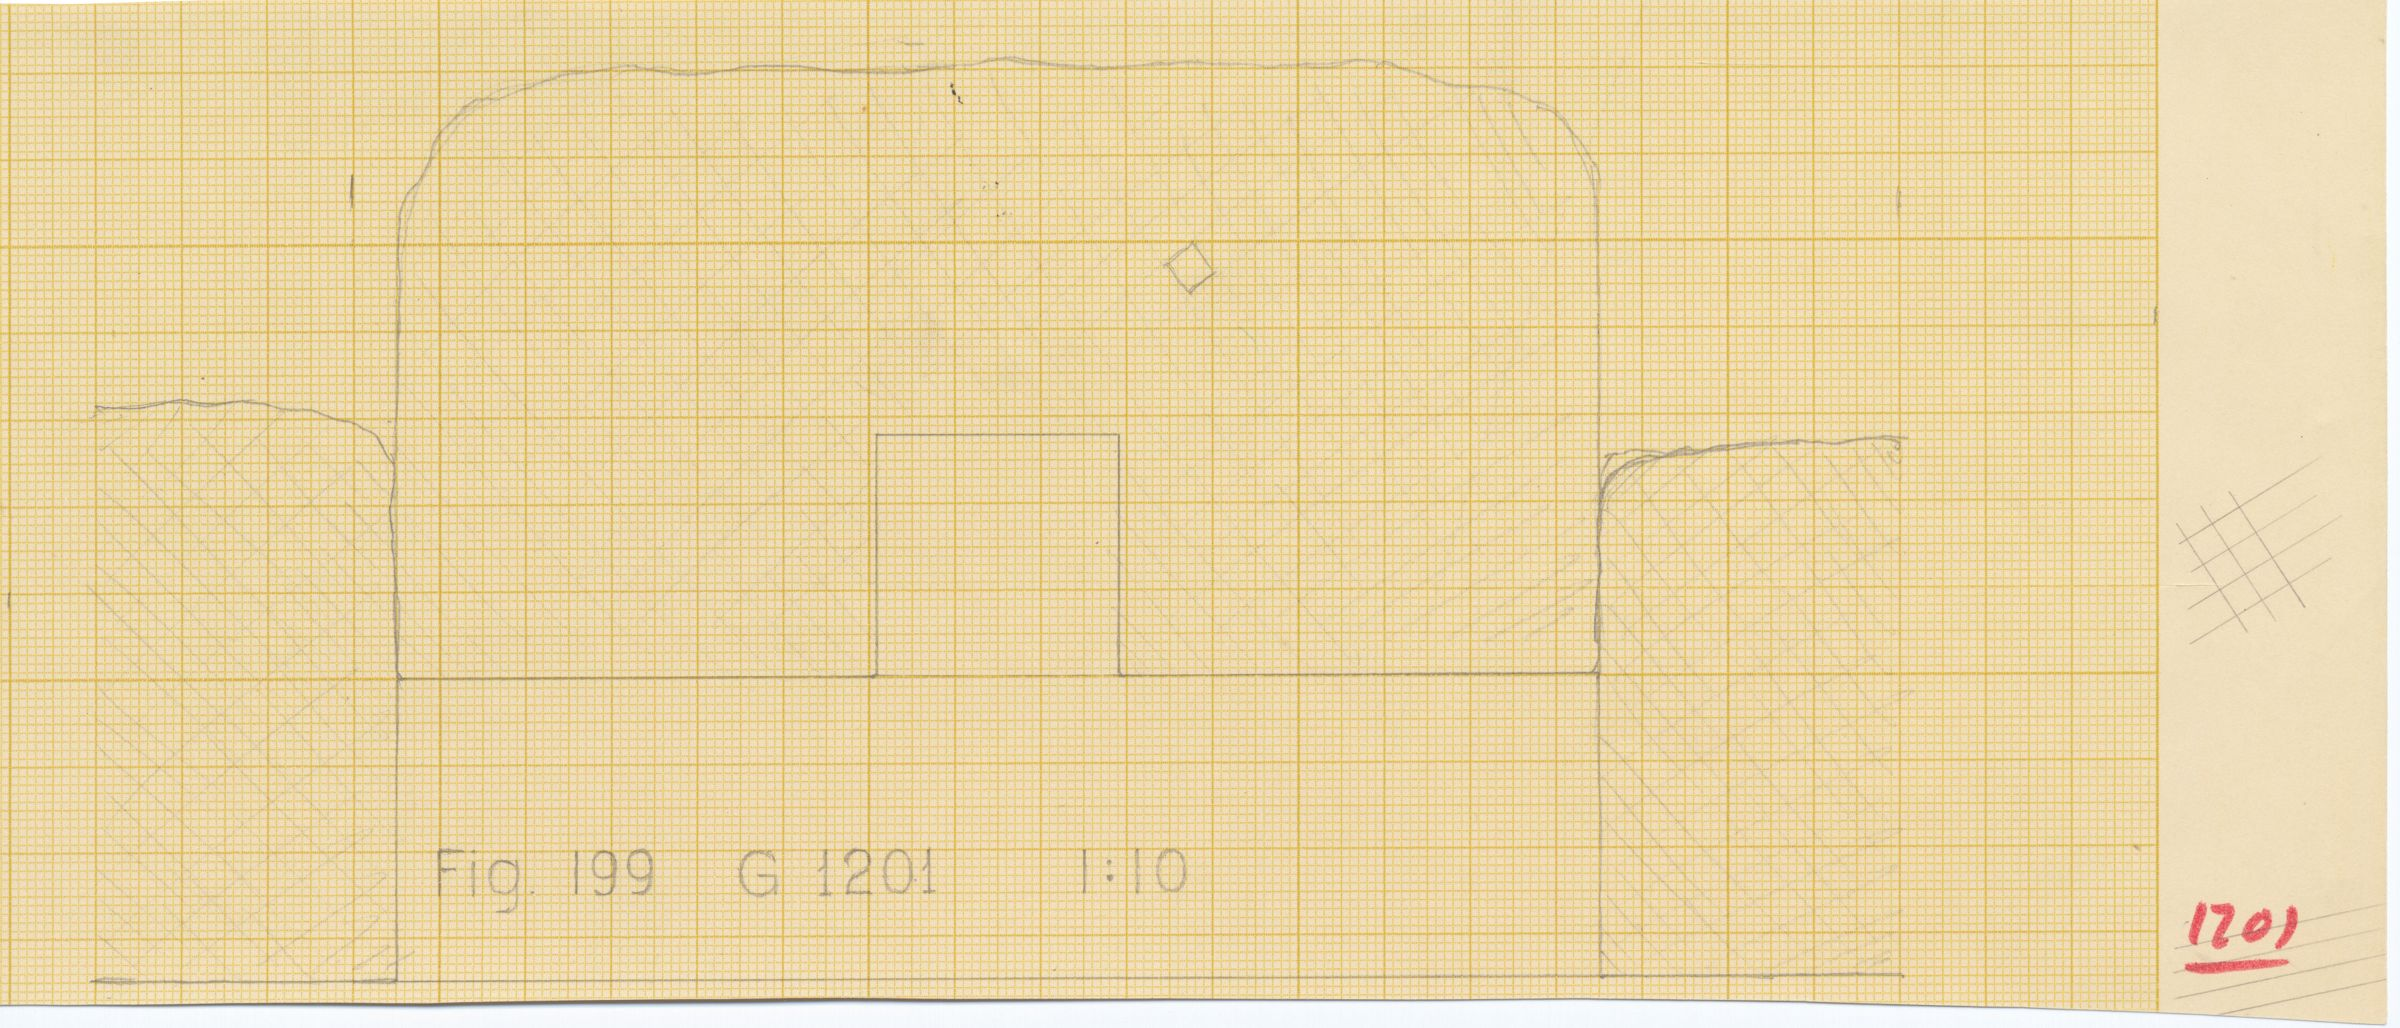 Maps and plans: G 1201, Plan of niche